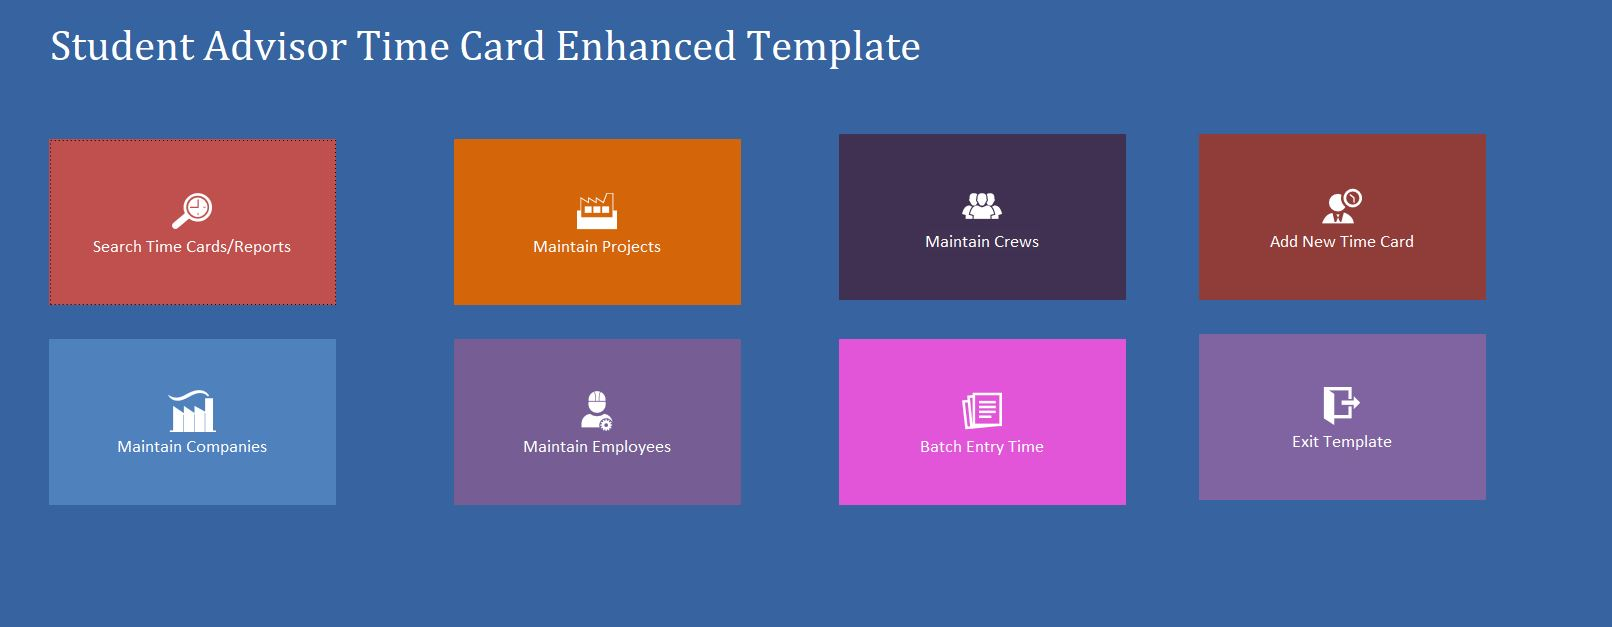 Enhanced Student Advisor Time Card Template | Time Card Database